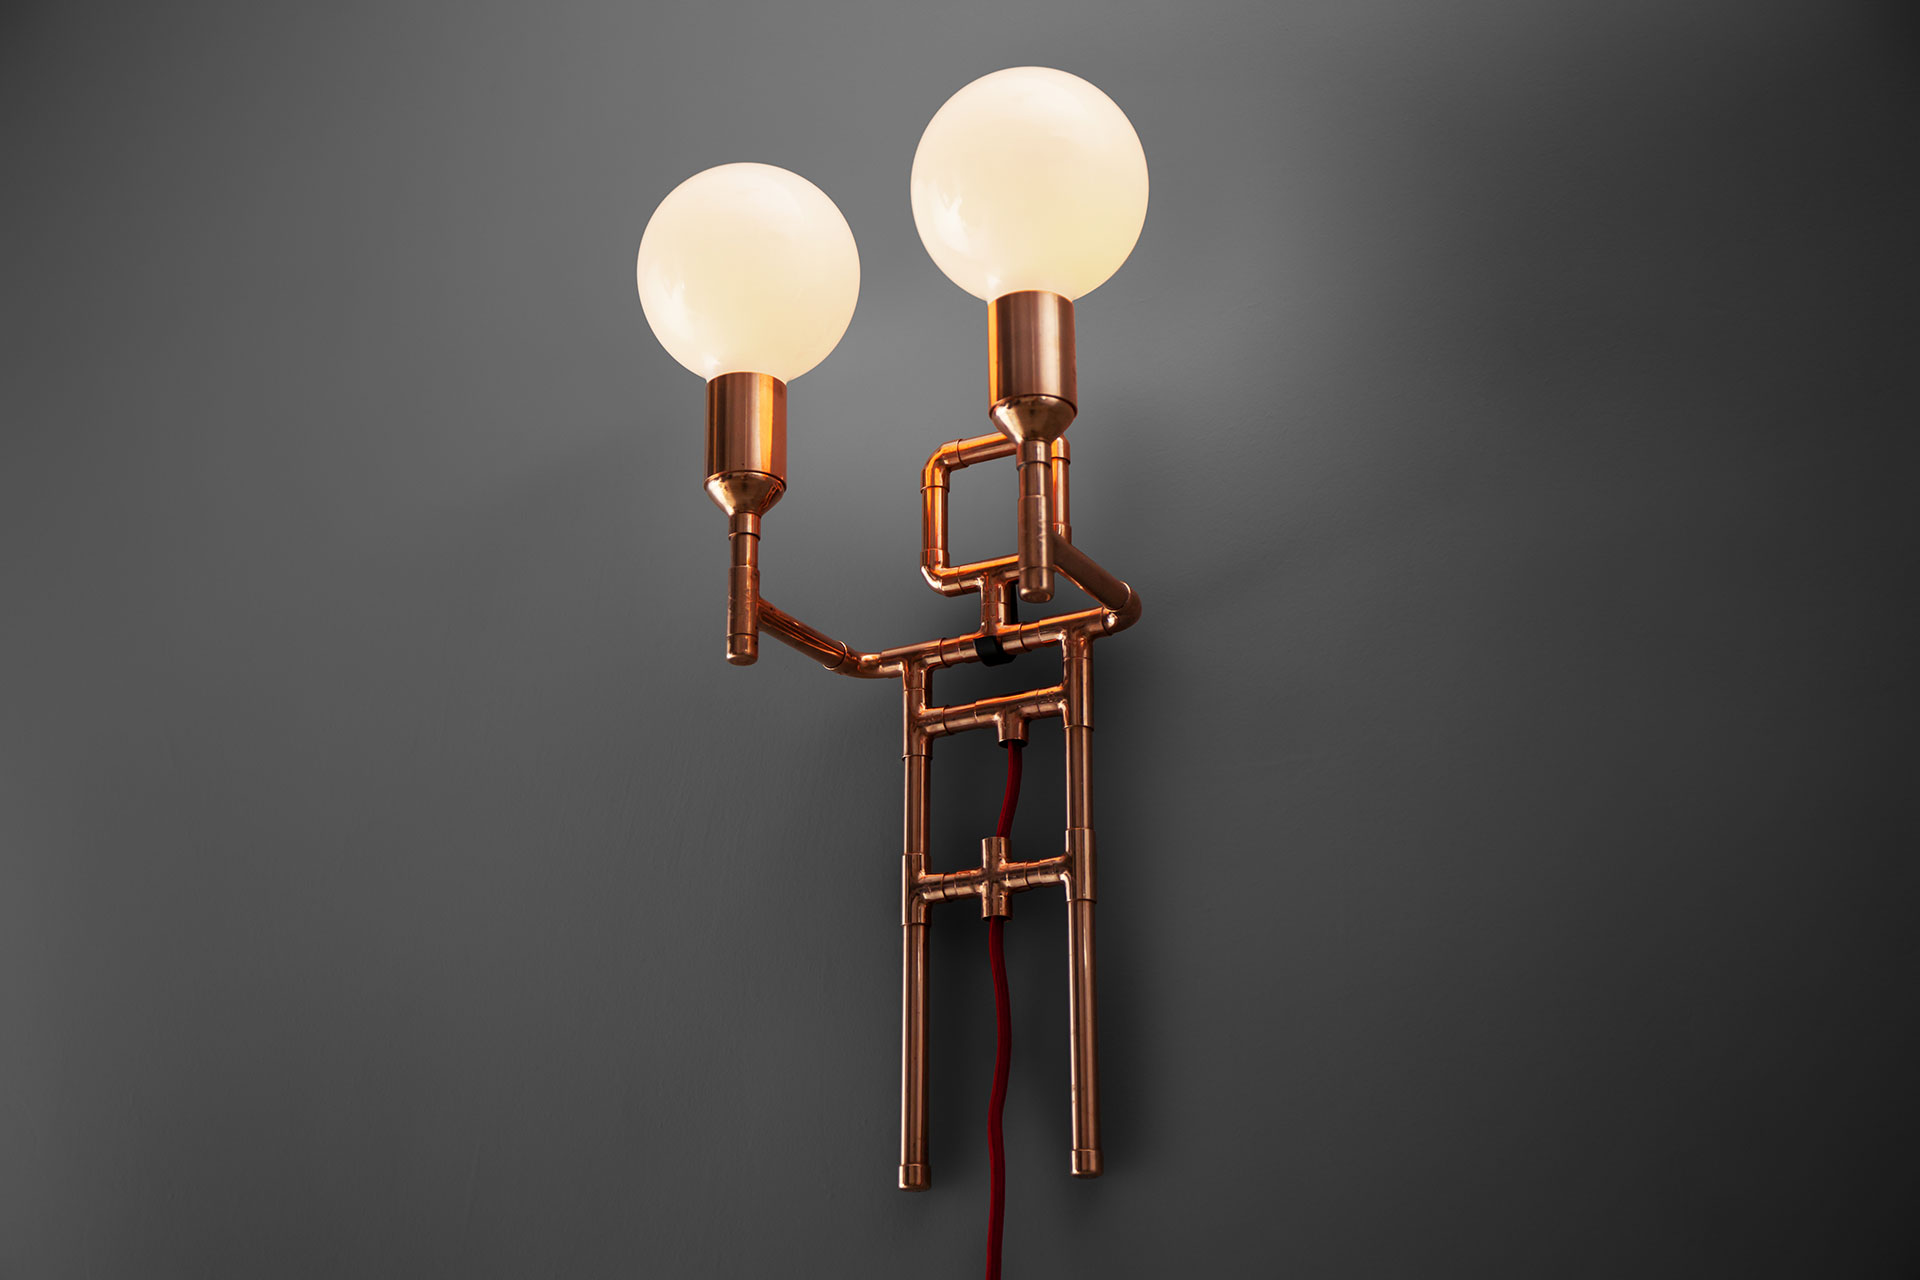 Cool designers sconce in copper or brass